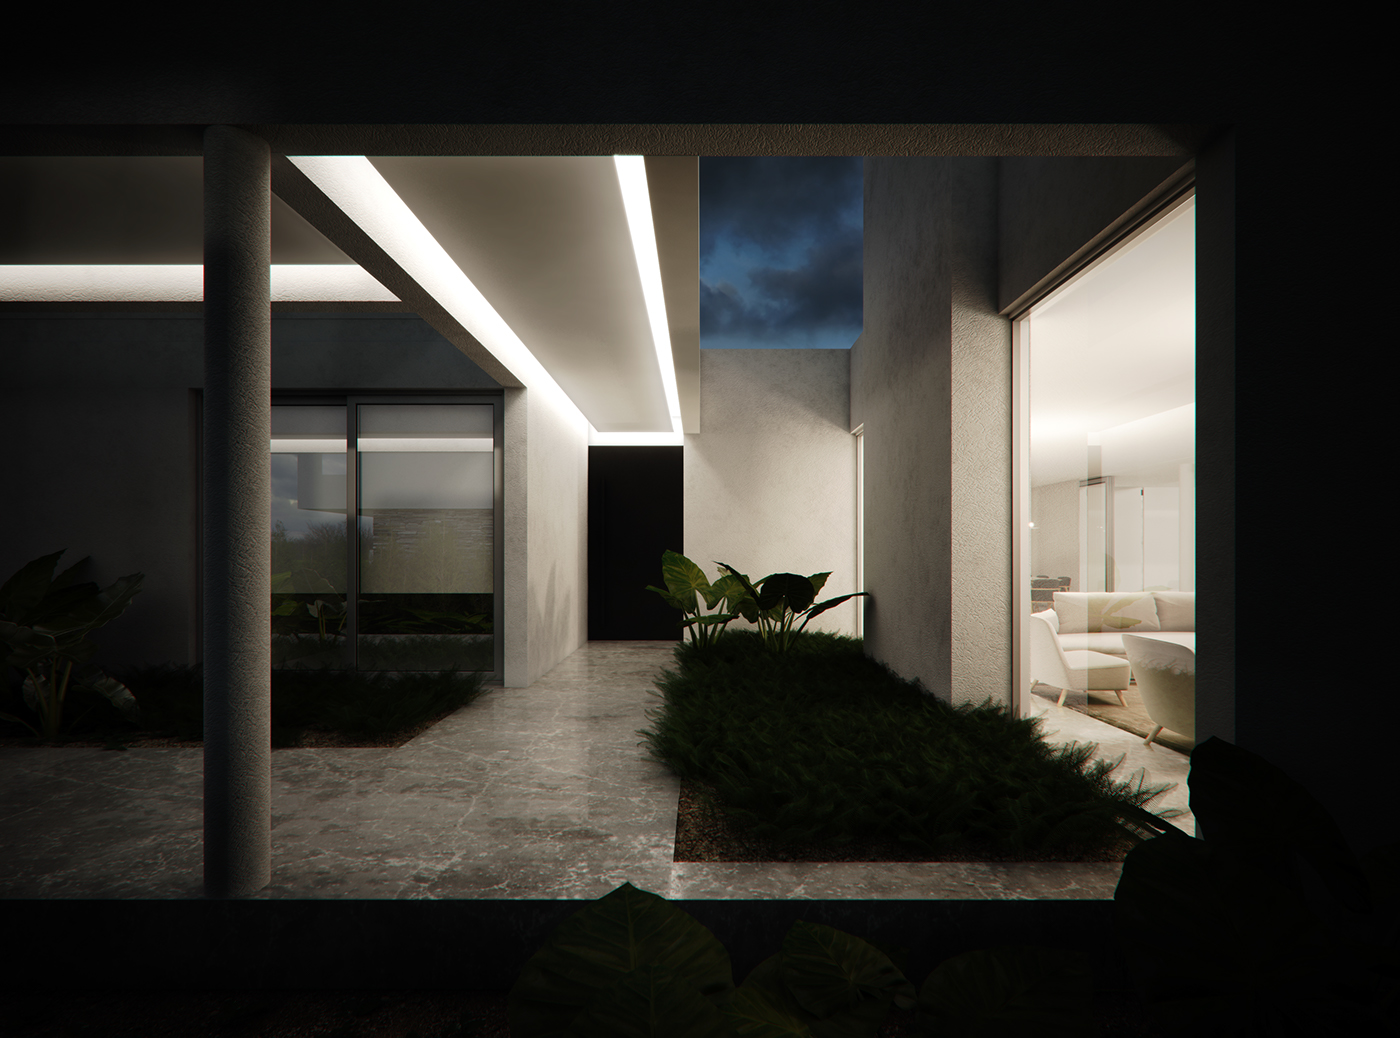 Casa 10- MOA architects www.moa-estudio.com on Behance